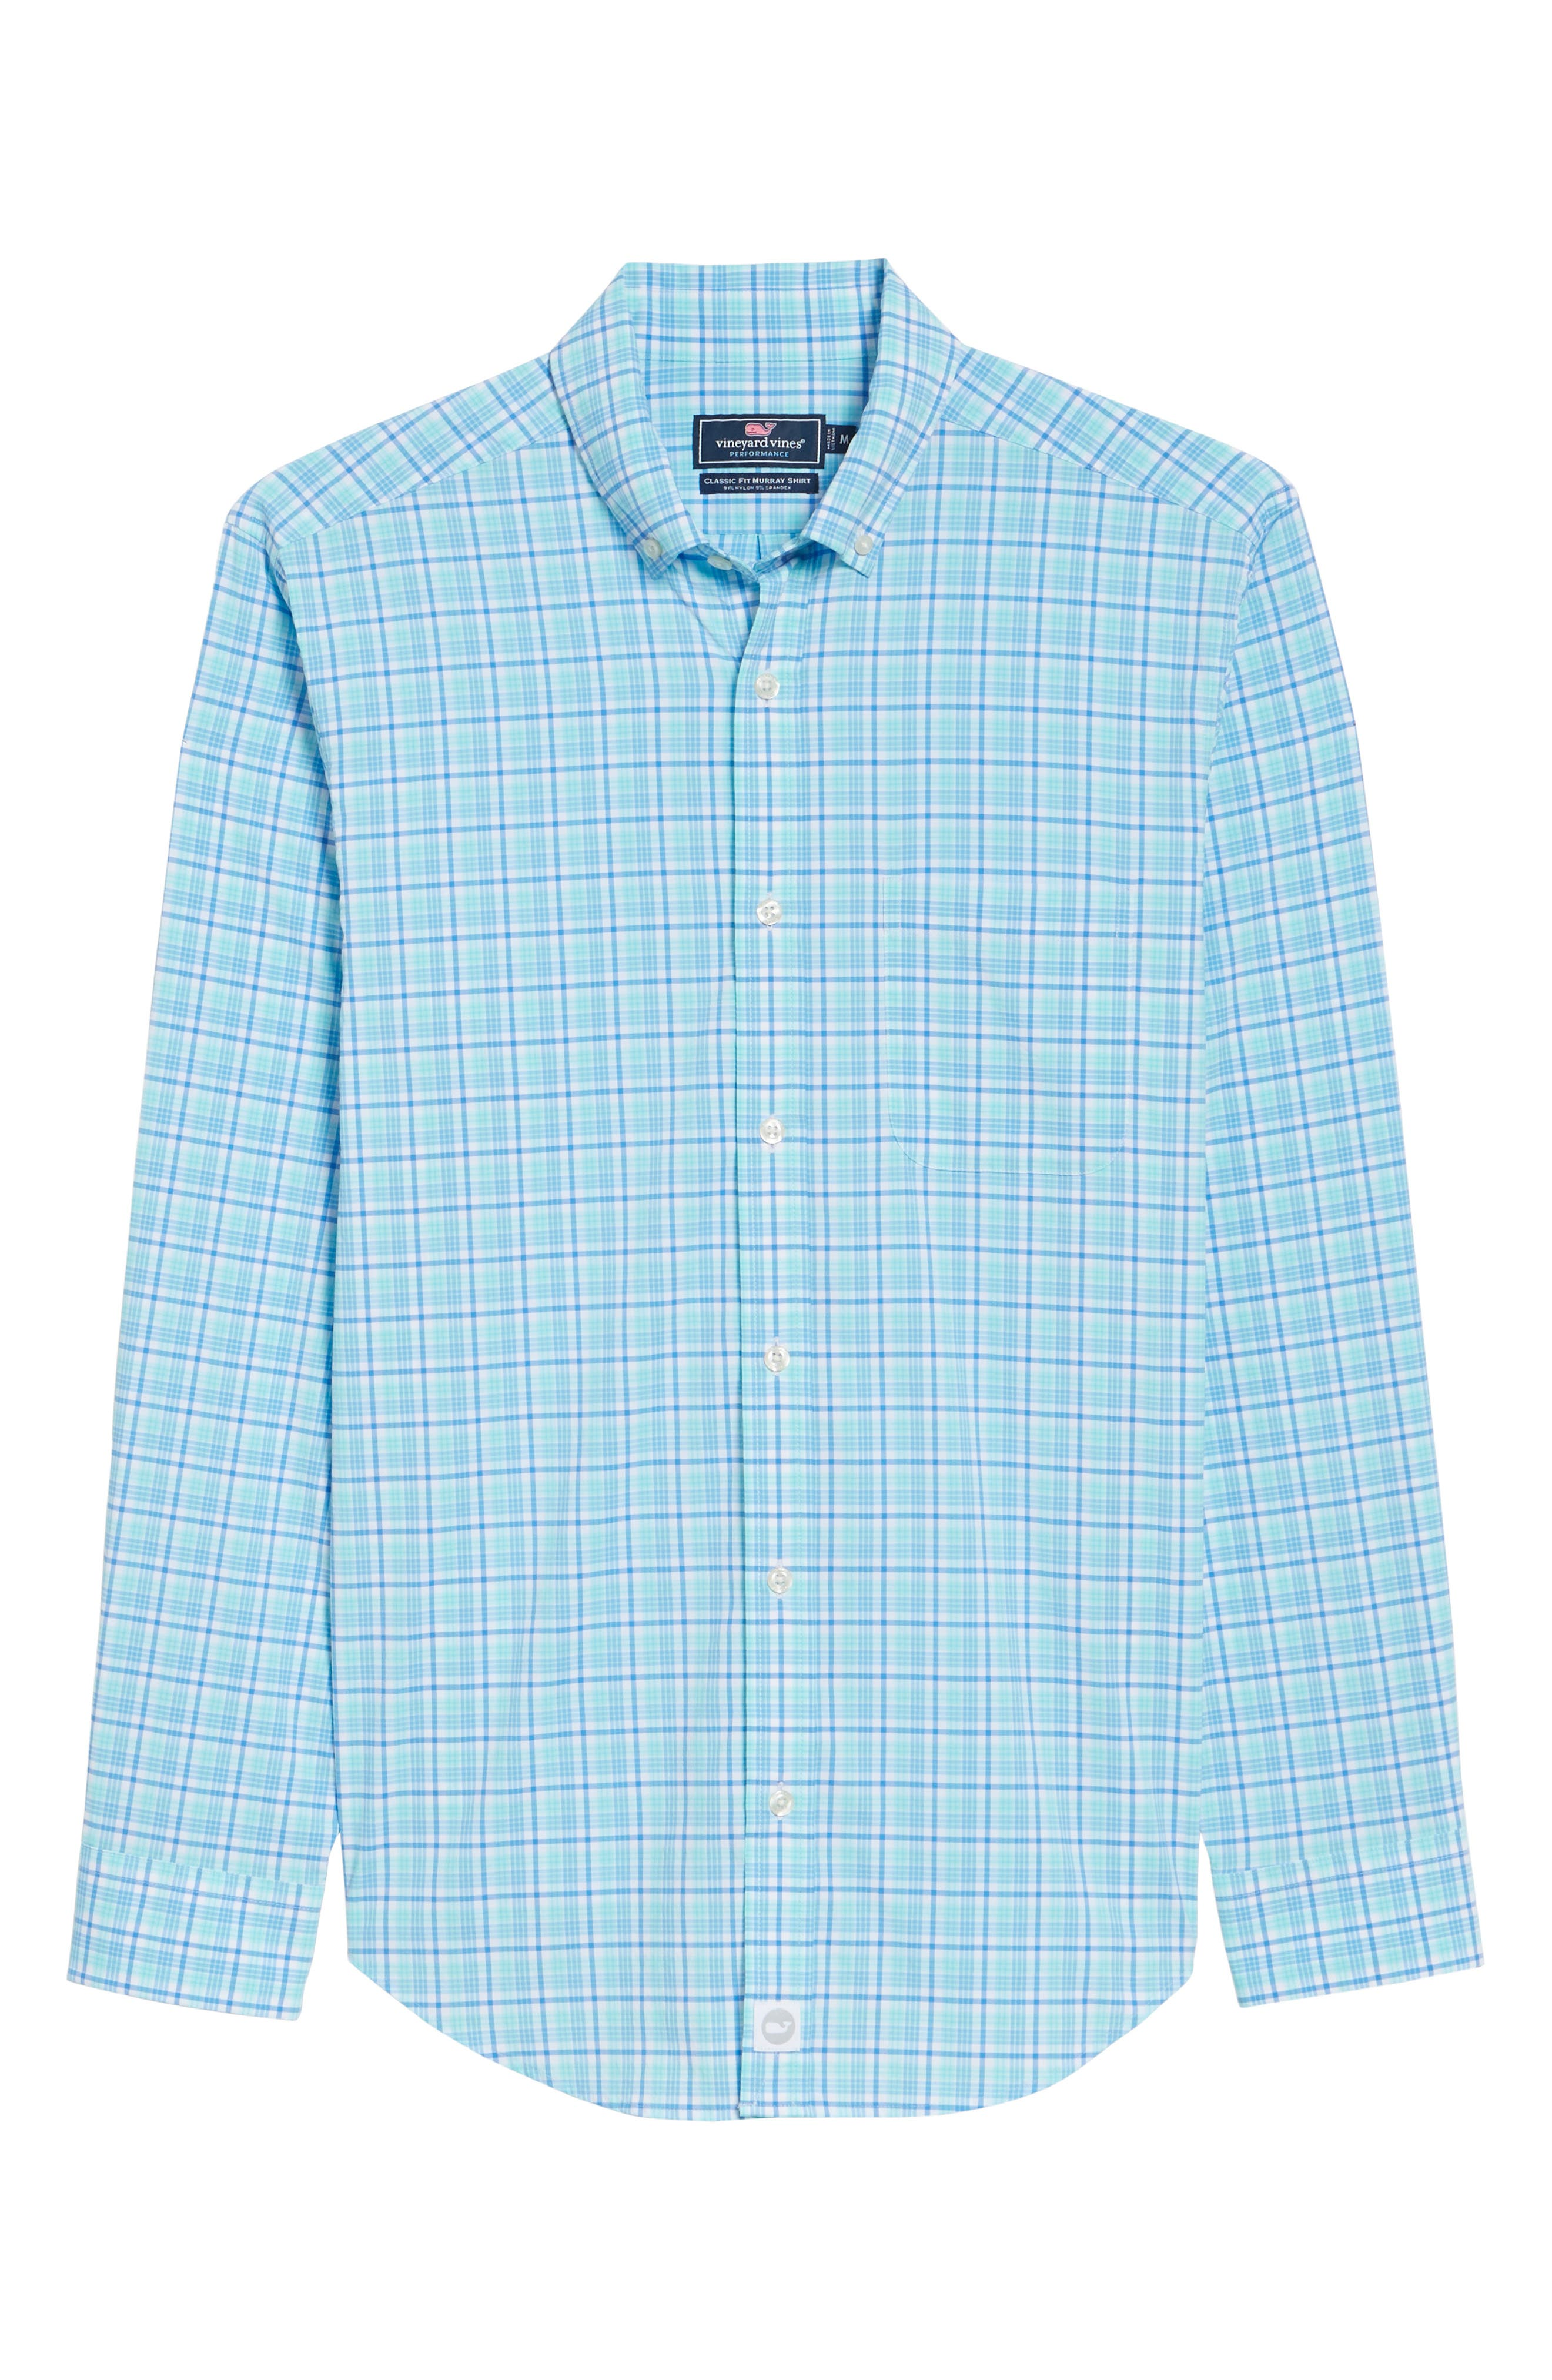 Tipsy Bar Classic Fit Stretch Plaid Sport Shirt,                             Alternate thumbnail 6, color,                             Turquoise